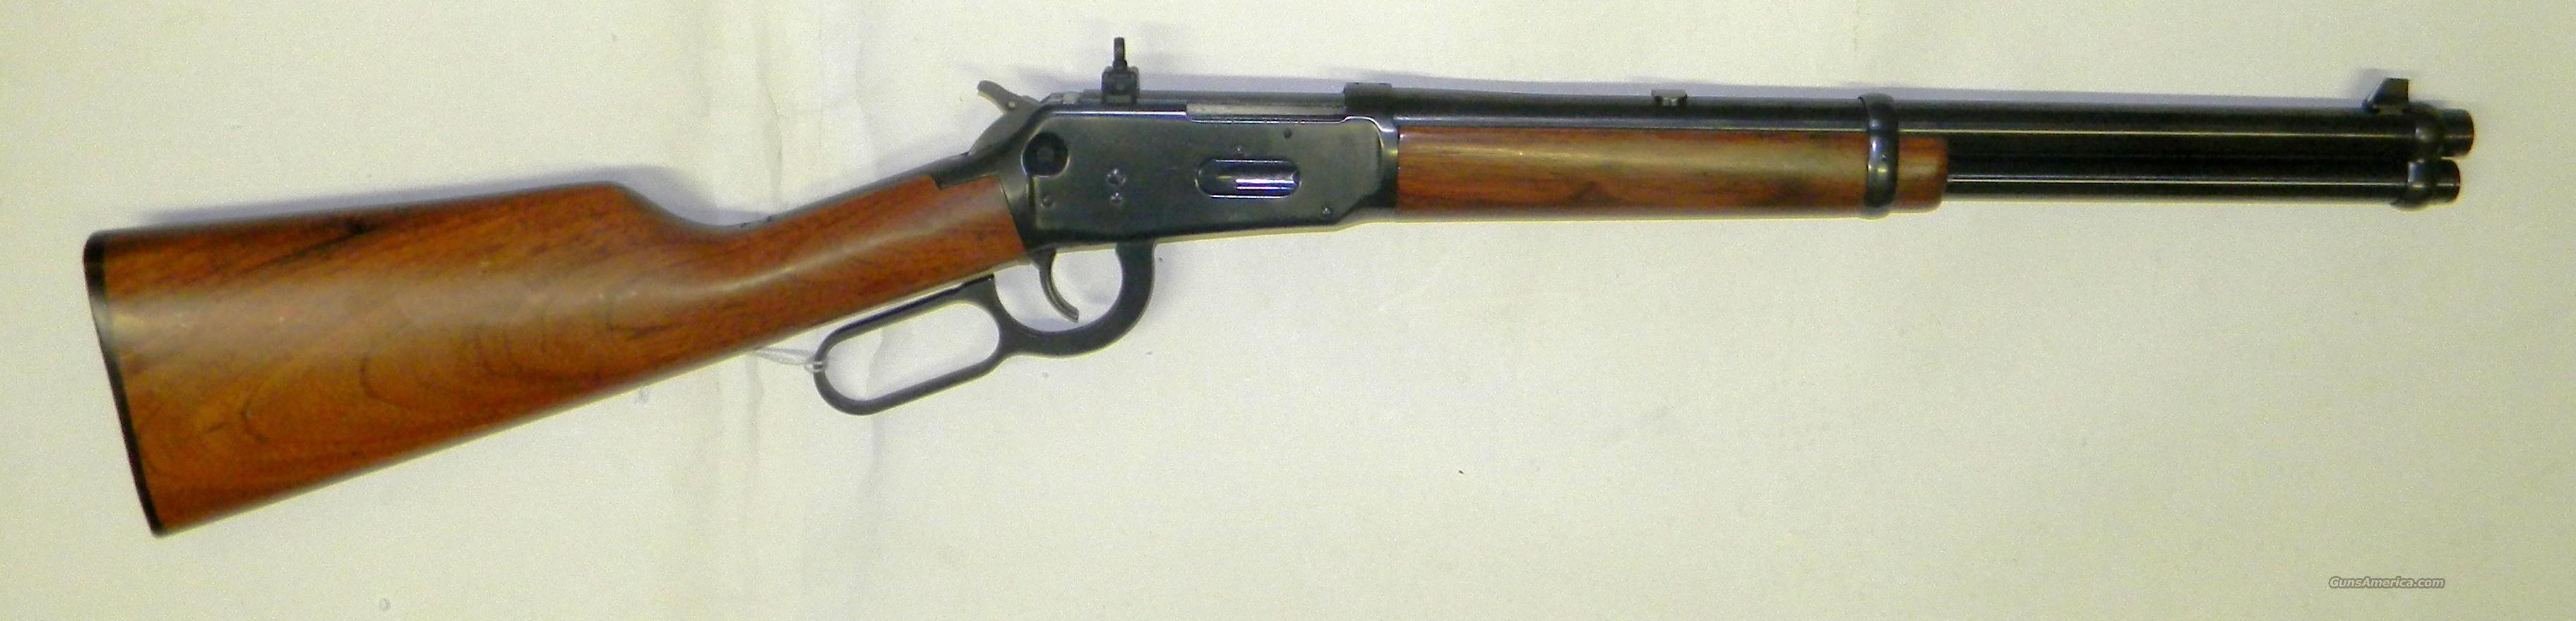 Winchester 1894 AE 45 Colt  Guns > Rifles > Winchester Rifles - Modern Lever > Model 94 > Post-64